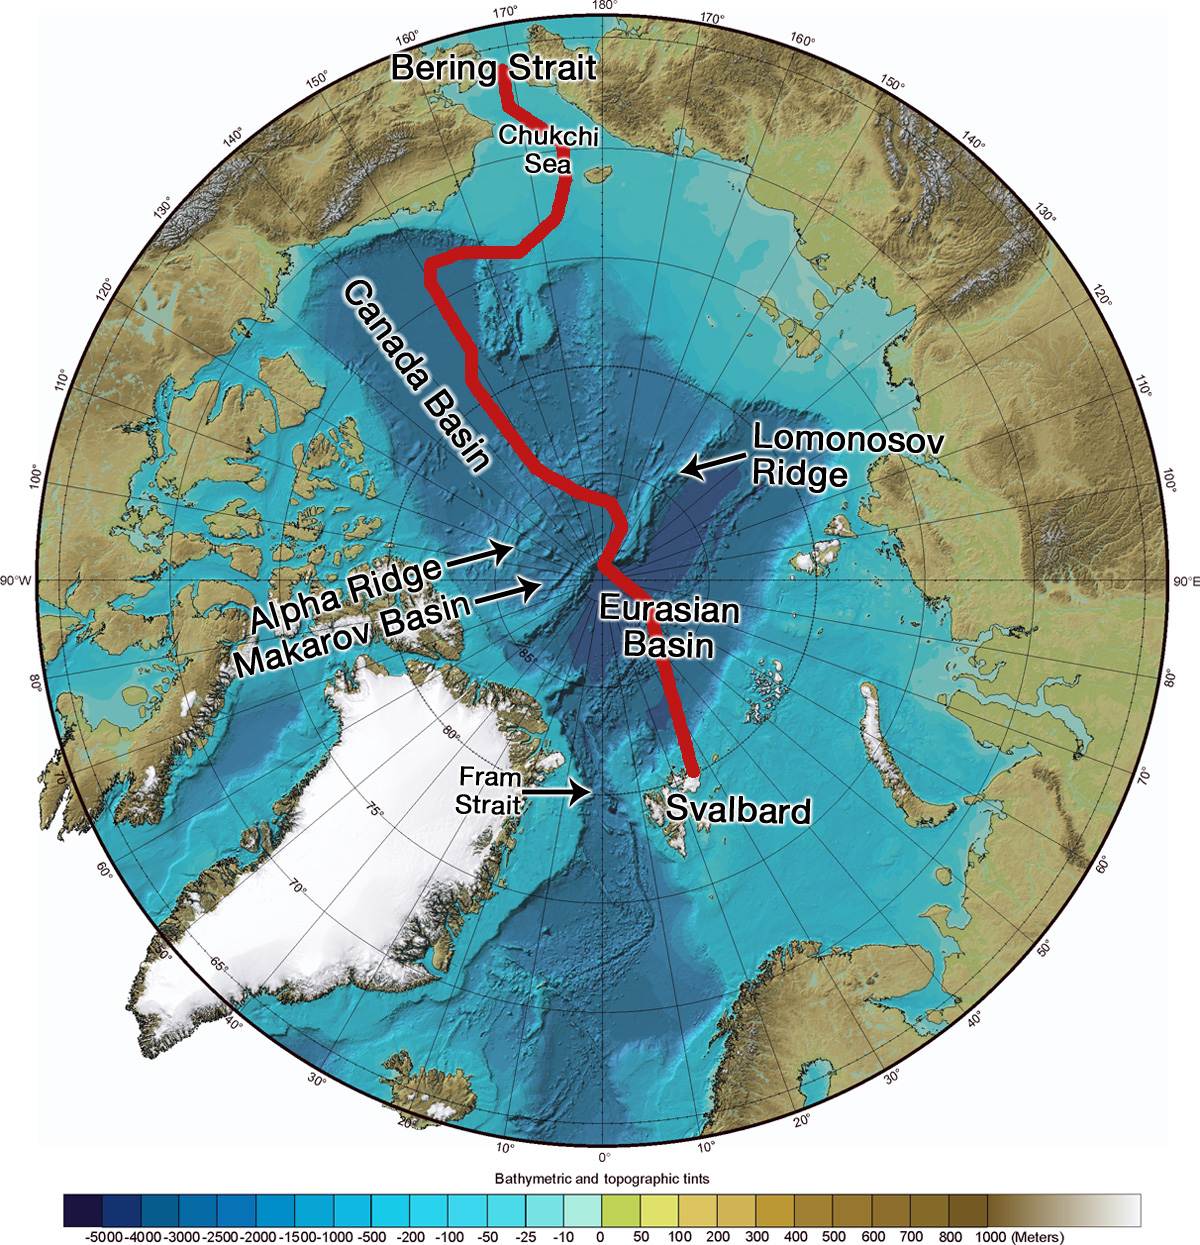 bathymetric and topographic map of the arctic usgs with important geographic and hydrographic features labeled red line represents hydrographic section